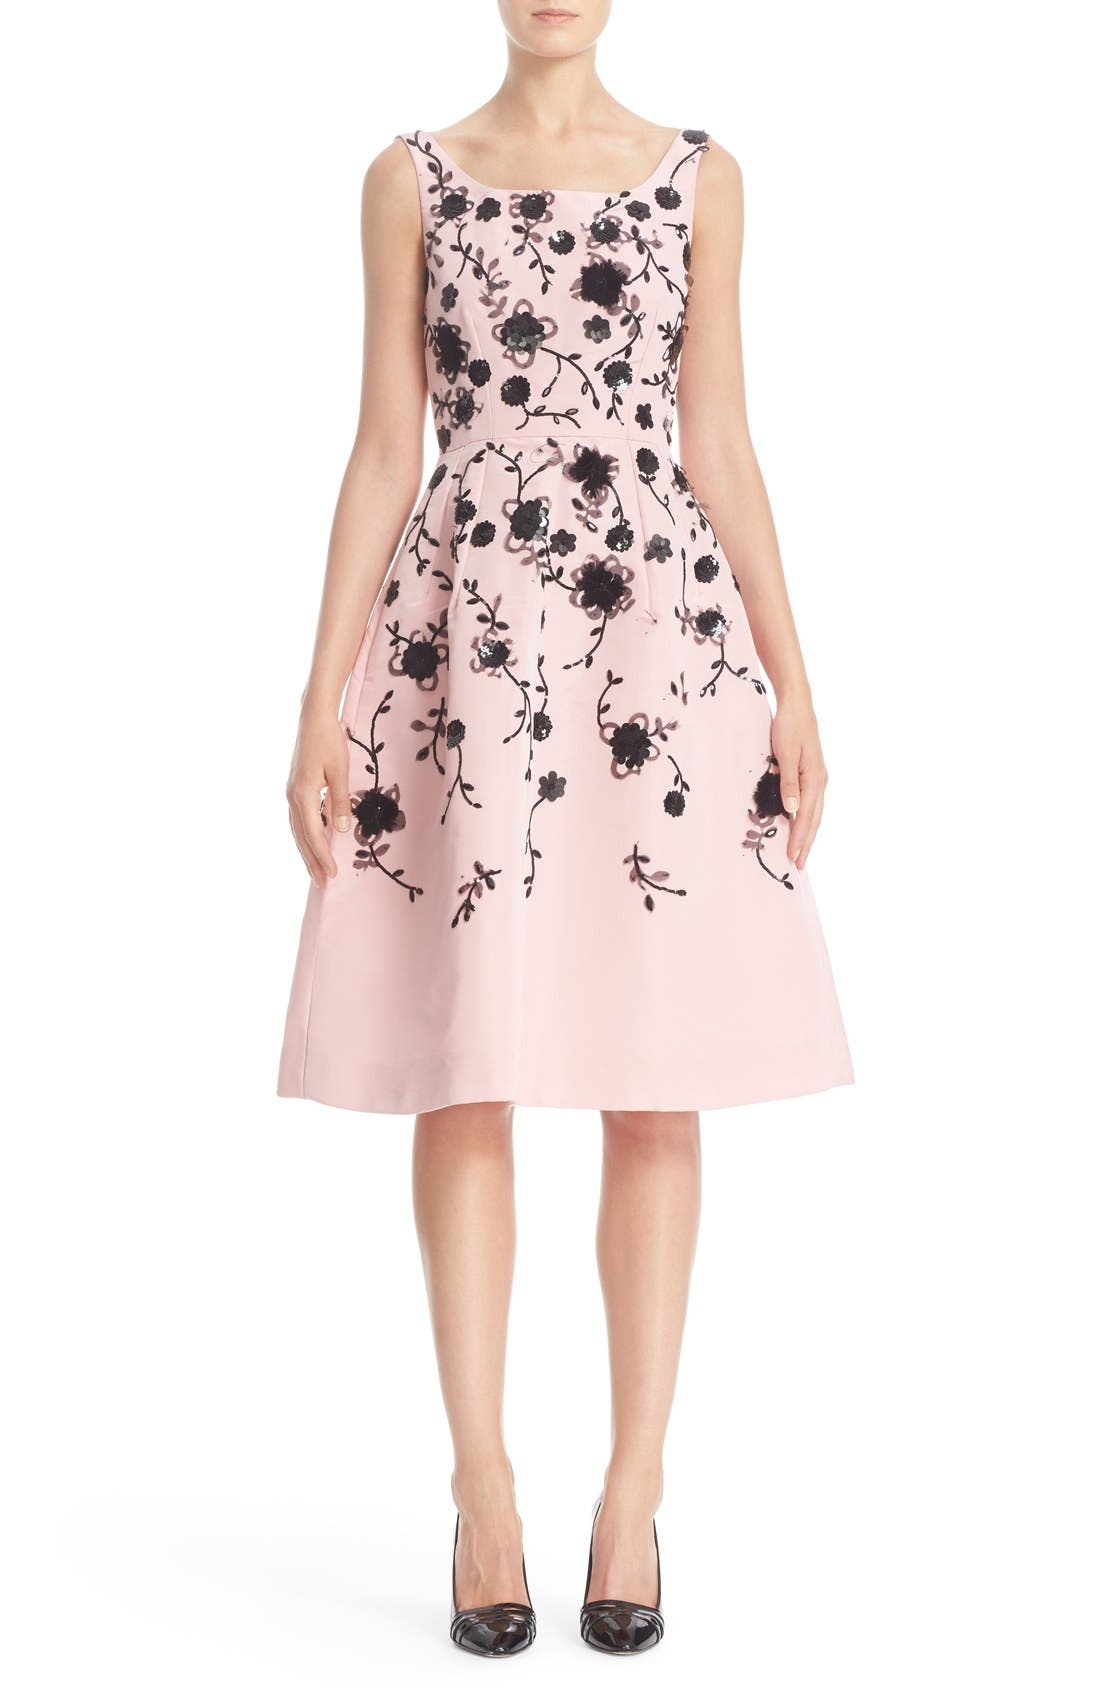 Main Image - Oscar de la Renta Floral Embroidered Silk Cocktail Dress